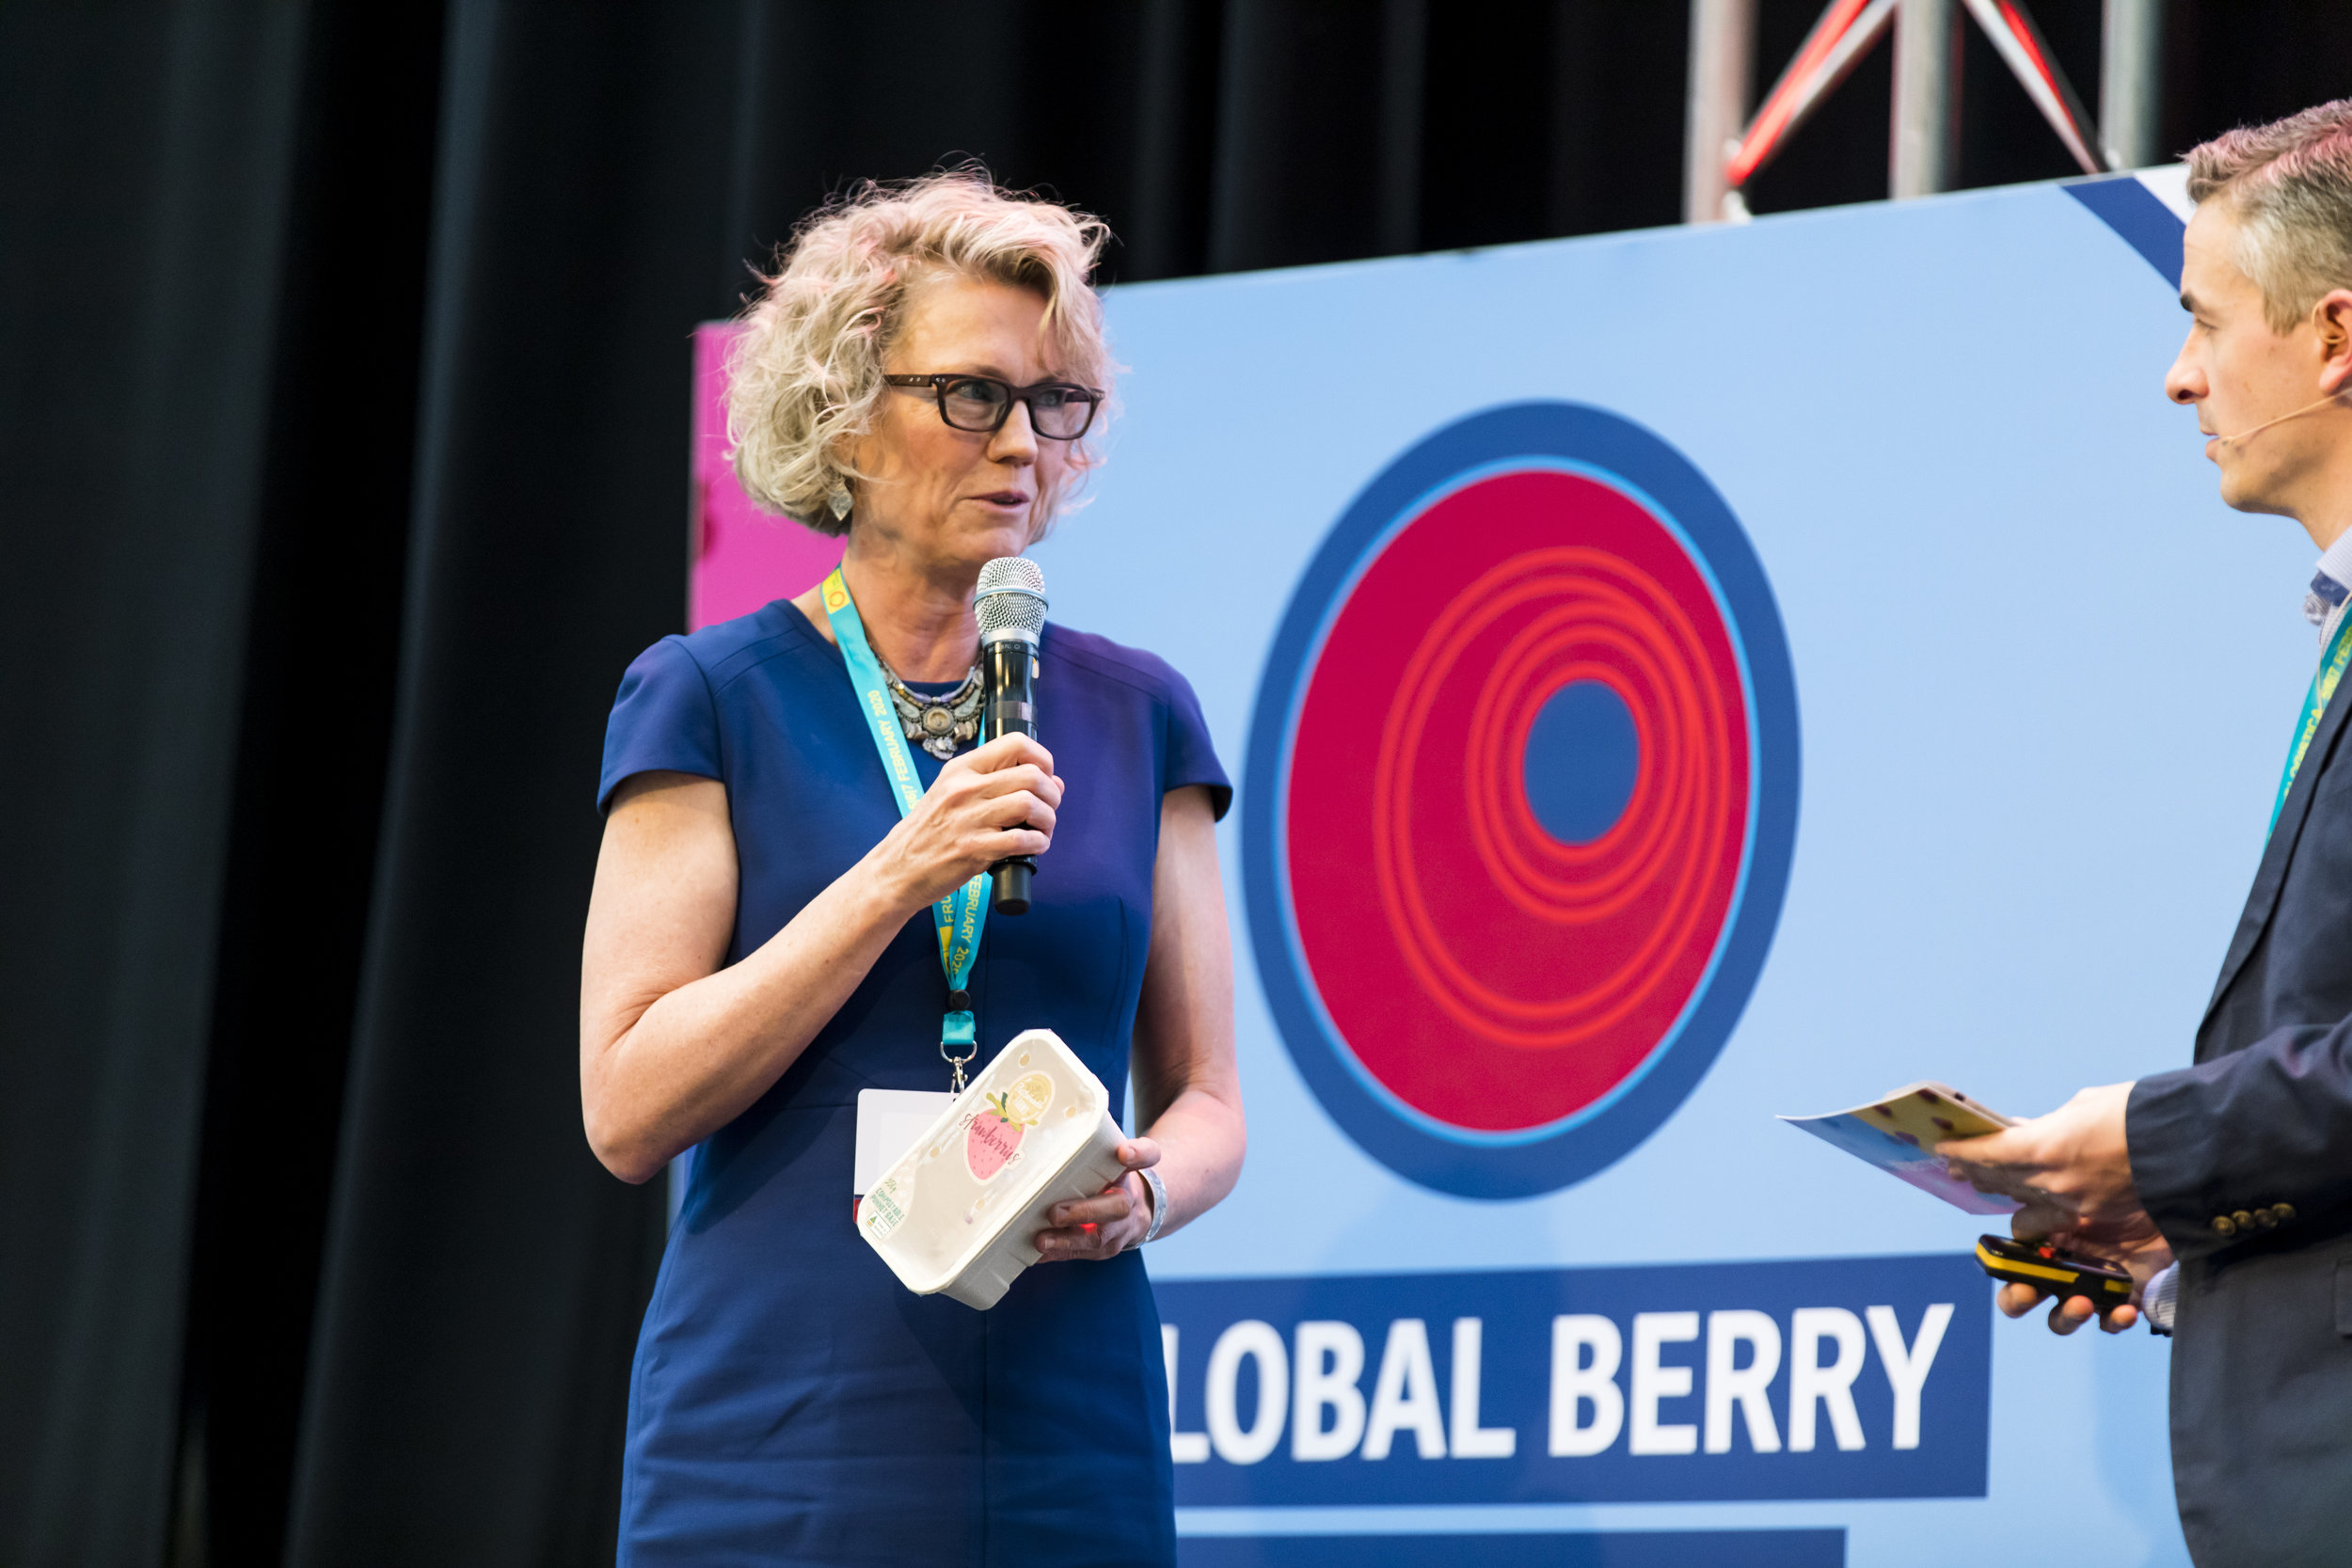 Global Berry Congress 2020 to focus on sustainability